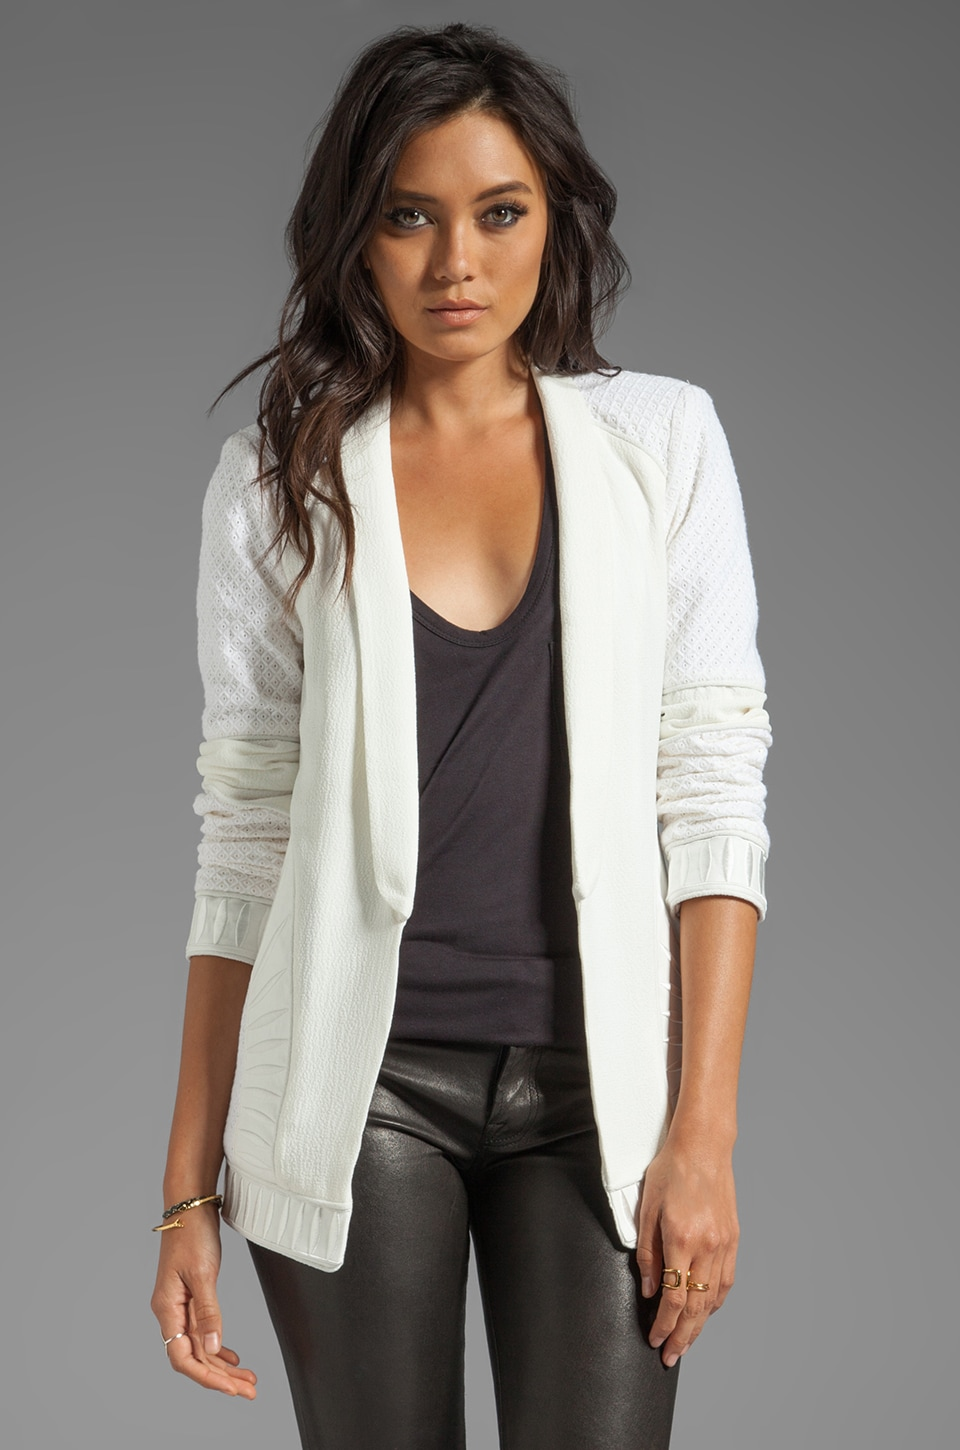 bless'ed are the meek Blade Jacket in Ivory